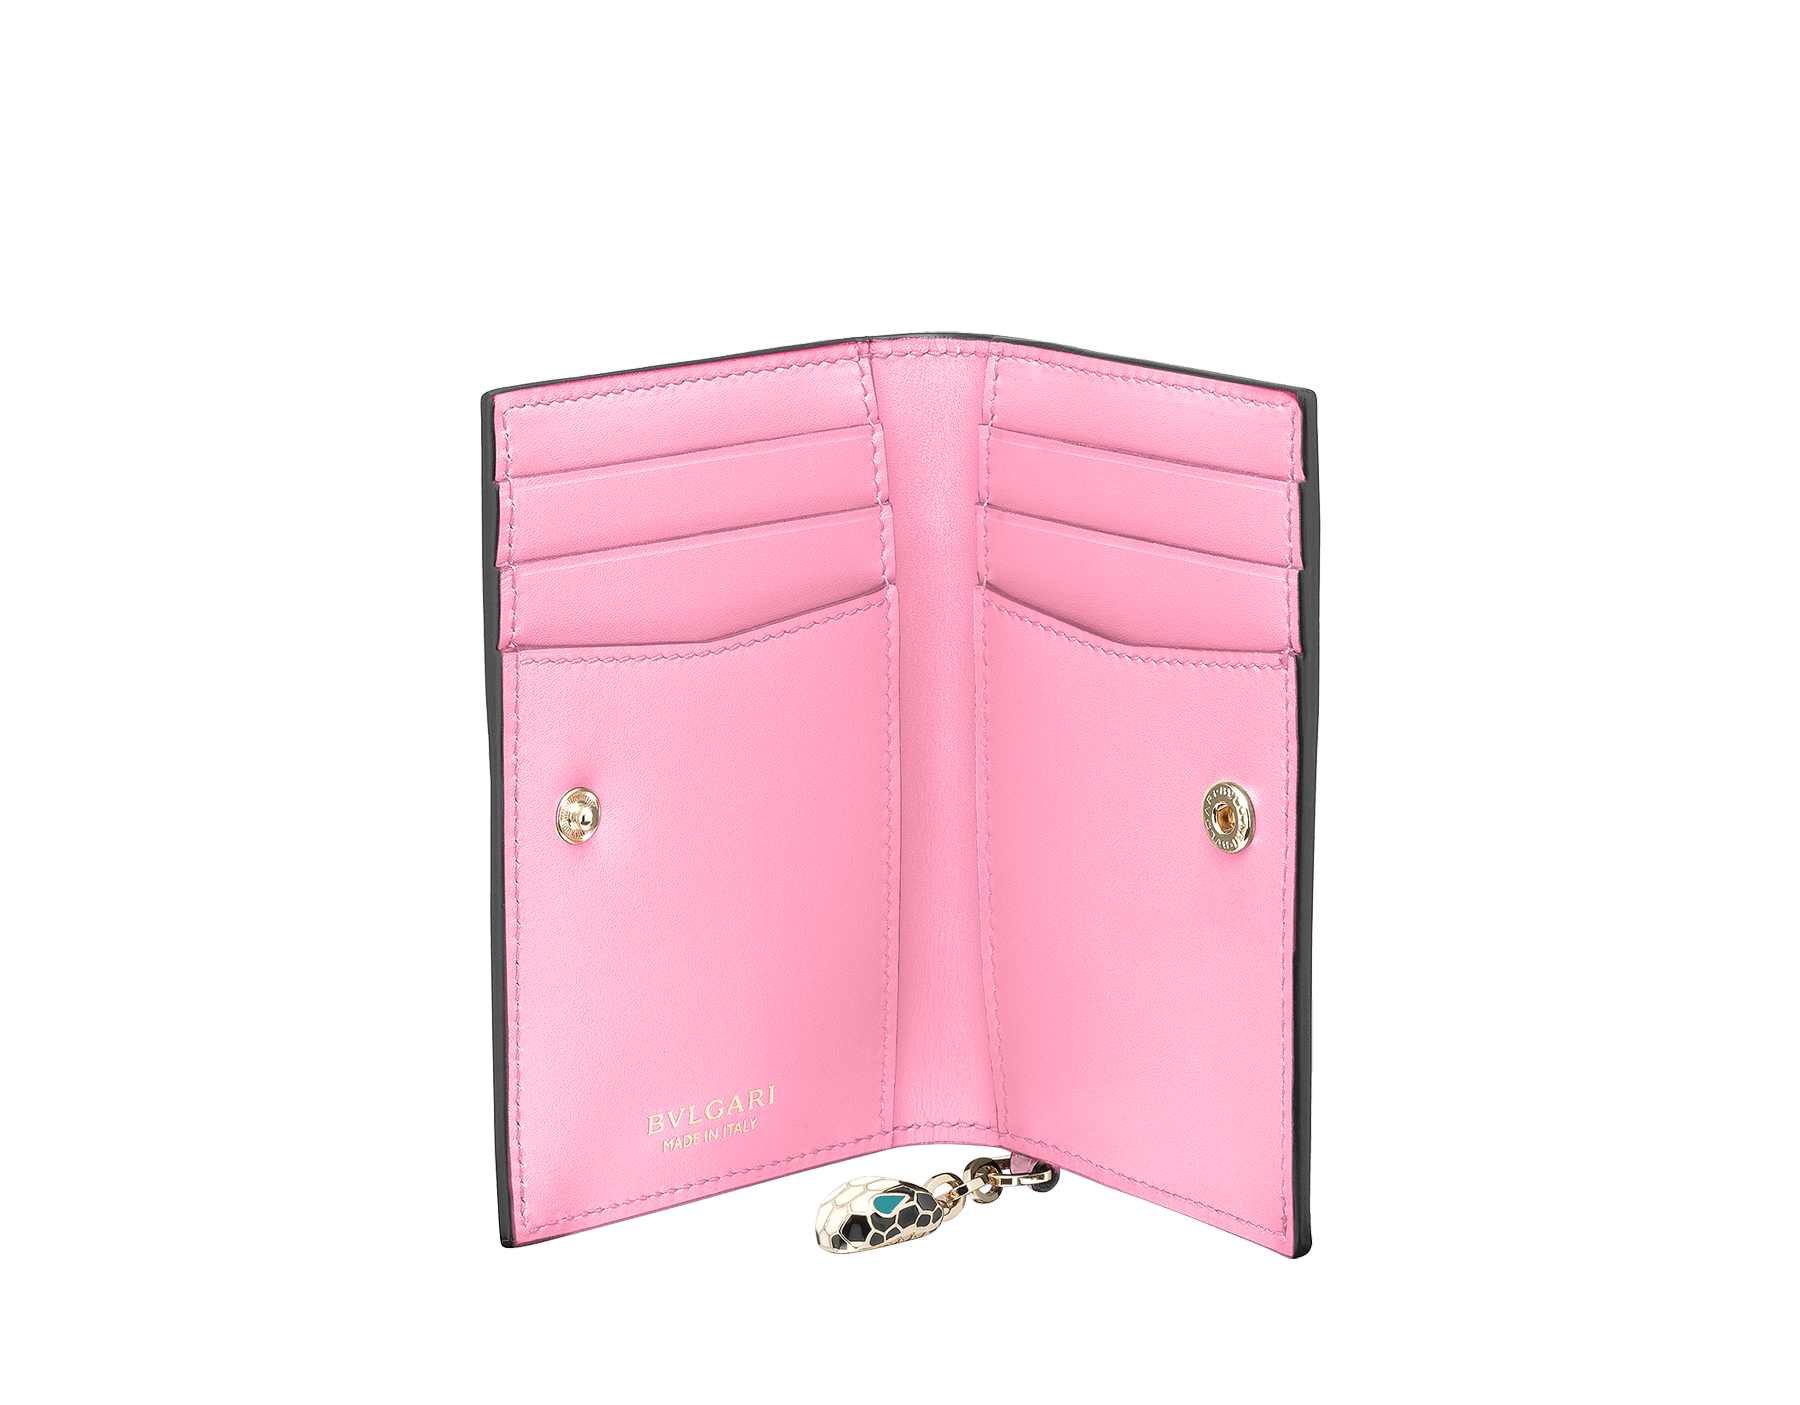 Serpenti Forever folded credit card holder in sea star coral calf leather. Iconic snakehead charm in black and white enamel, with green malachite enamel eyes. SEA-CC-HOLDER-FOLD-CLd image 2